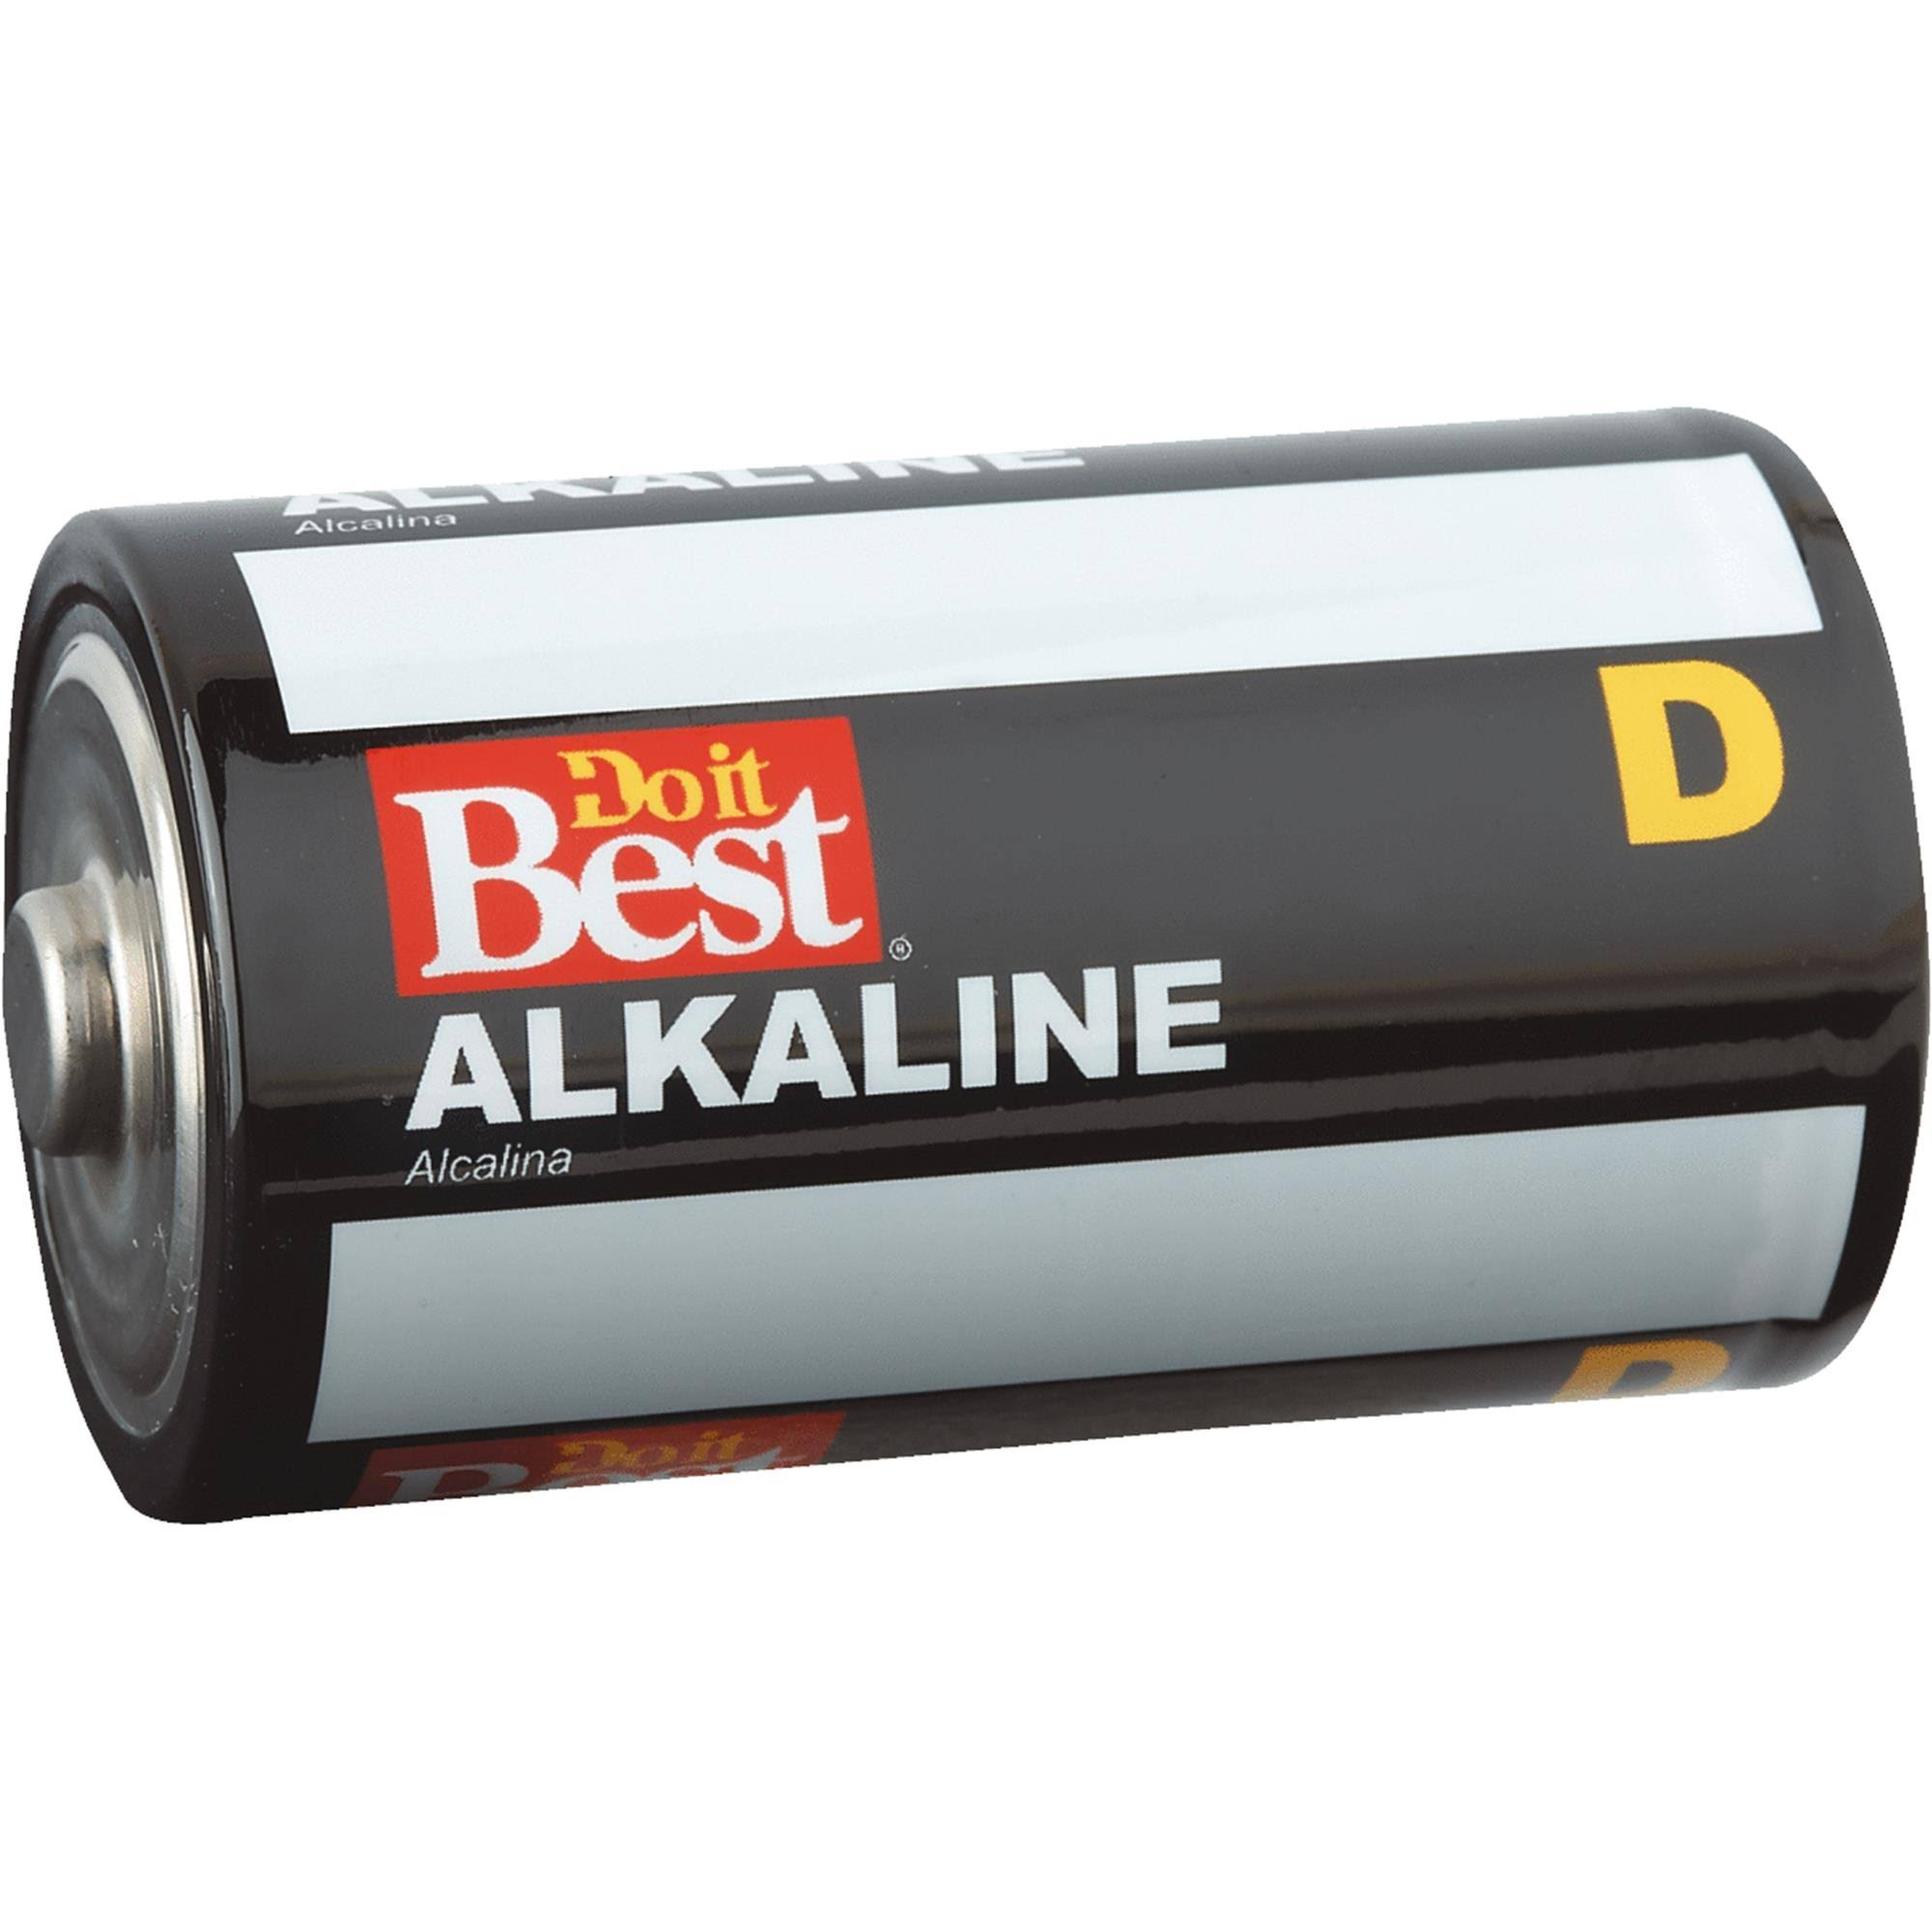 Do it Best Alkaline D Battery - 4pk